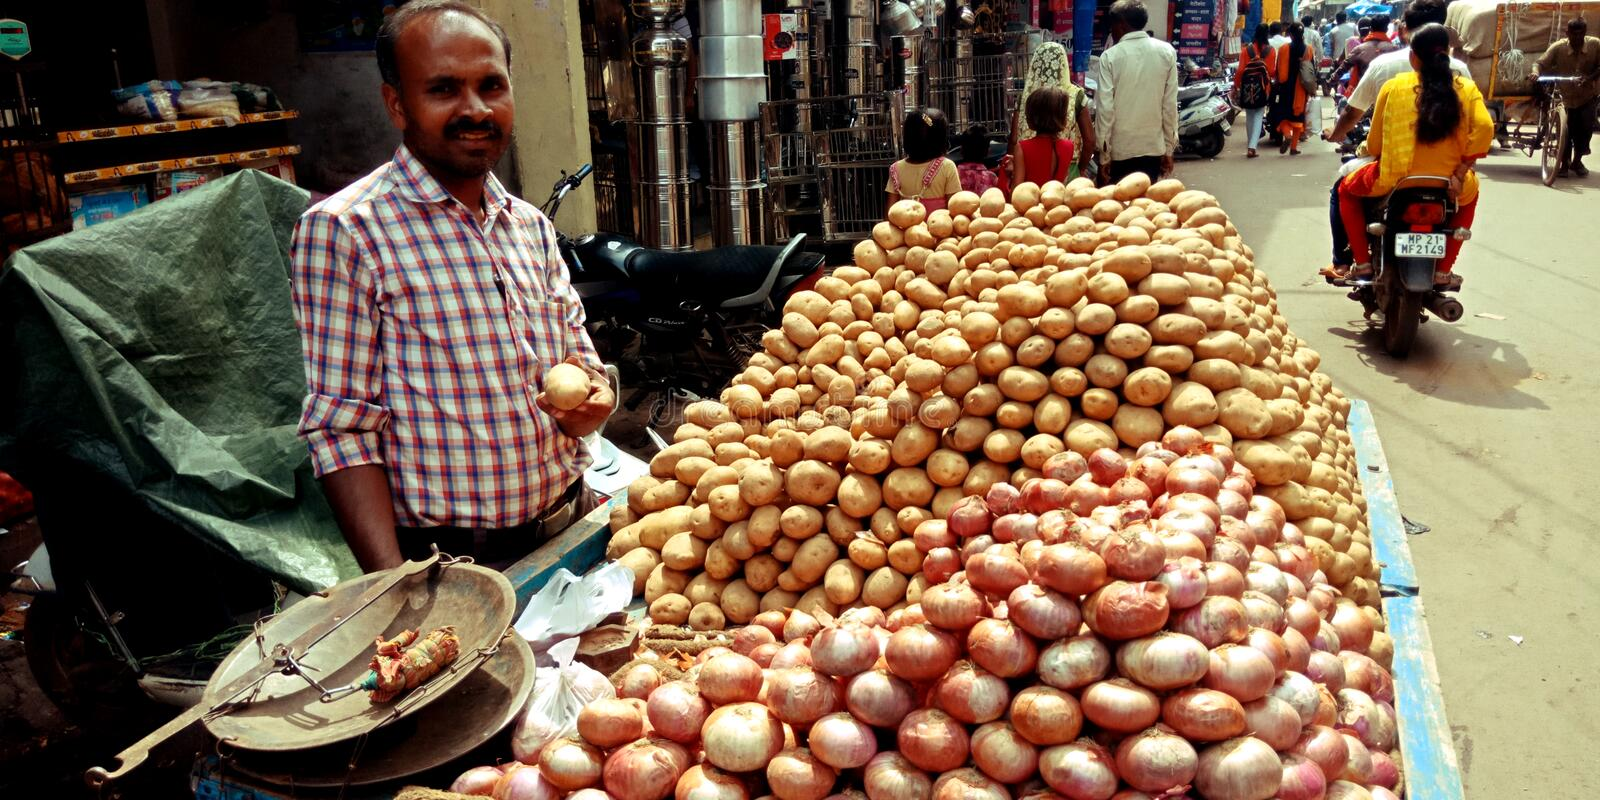 Onion and potato seller at street hand carriage shop royalty free stock image